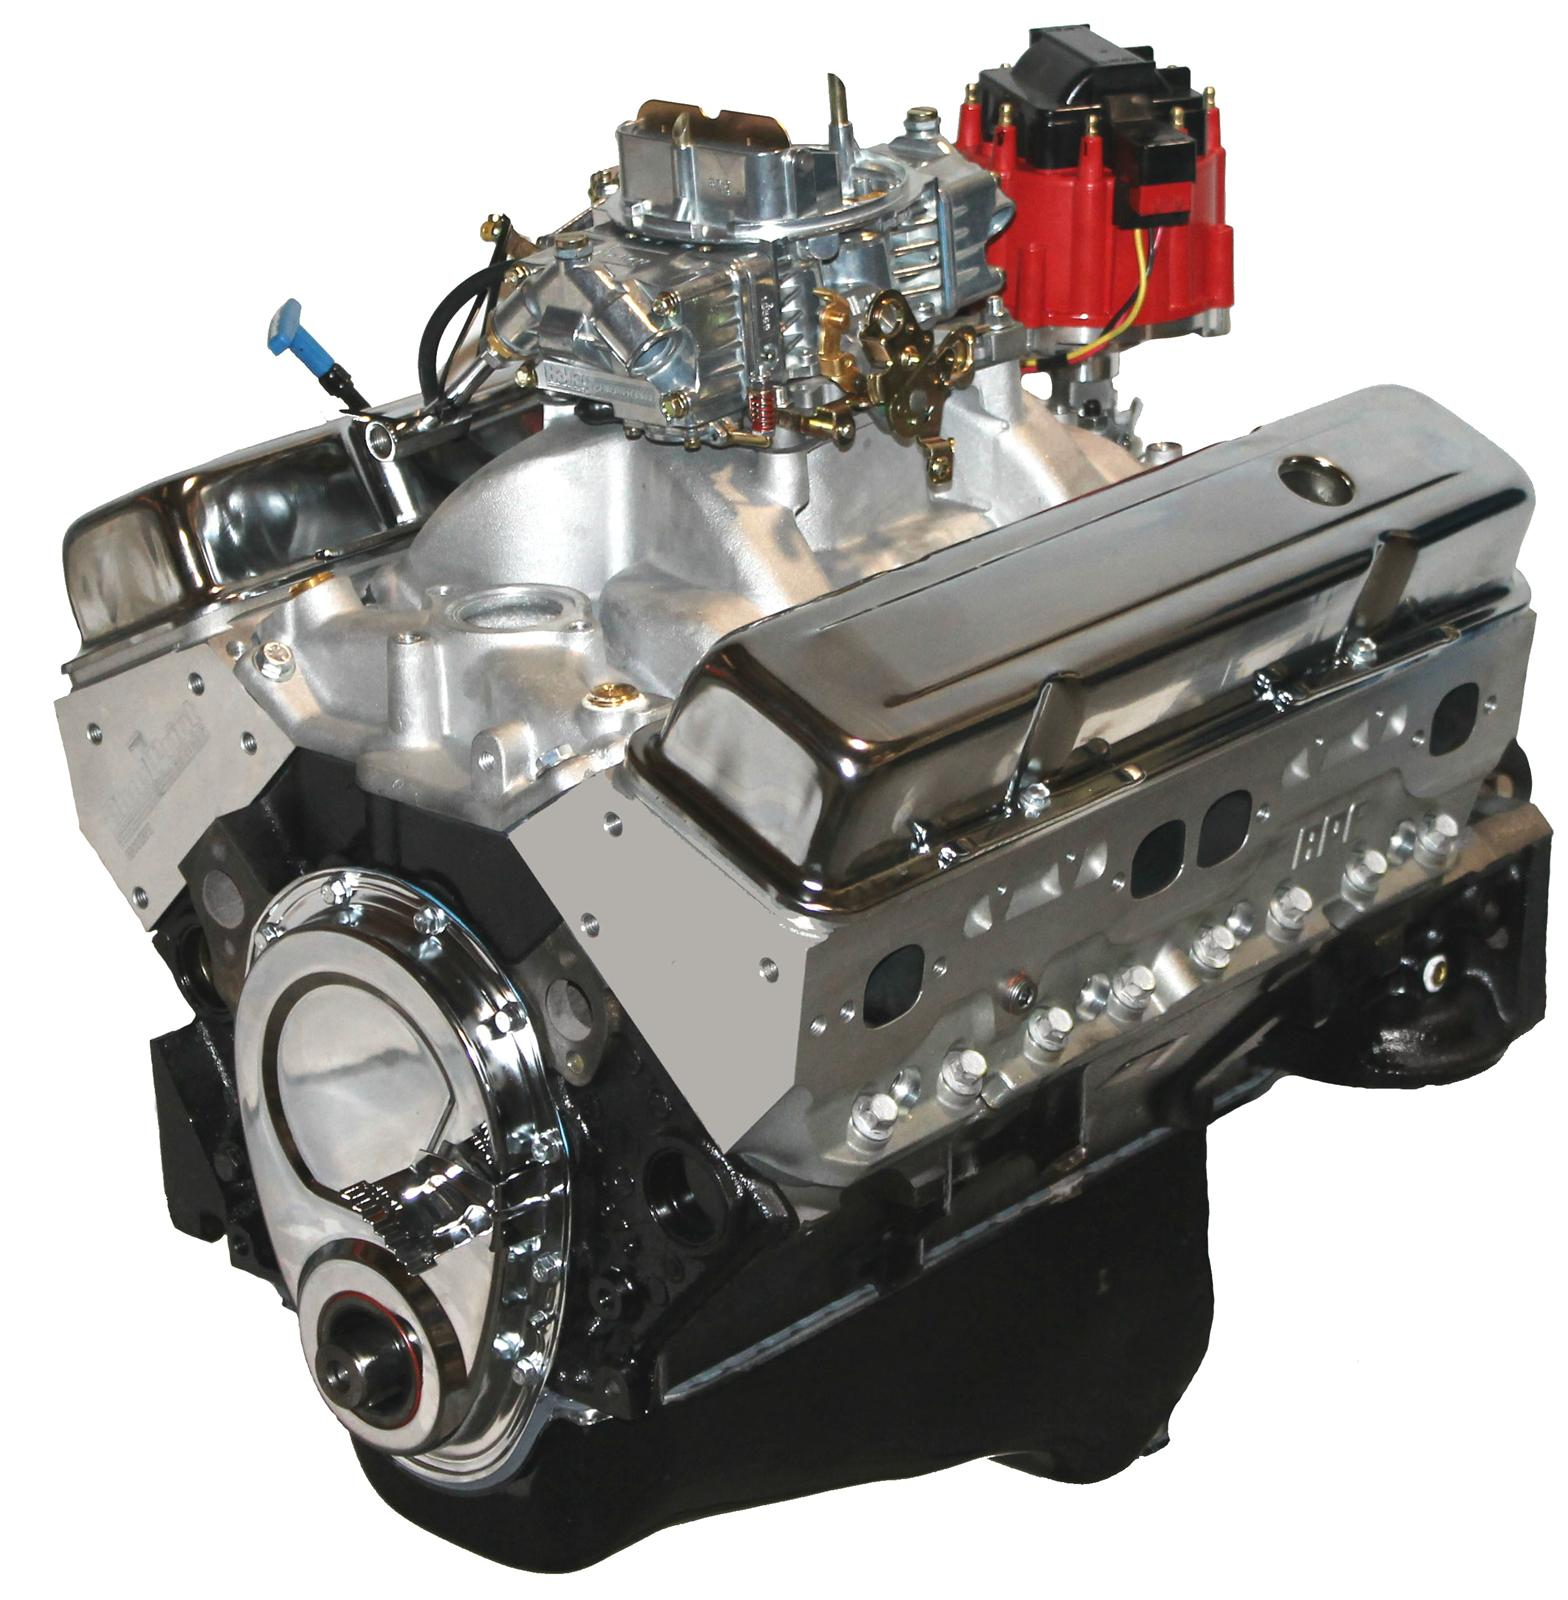 BluePrint Engines GM 383 C.I.D. 430 HP Stroker Base Dressed Long Blocks  w/Aluminum Heads BP38313CTC1 - Free Shipping on Orders Over $99 at Summit  Racing